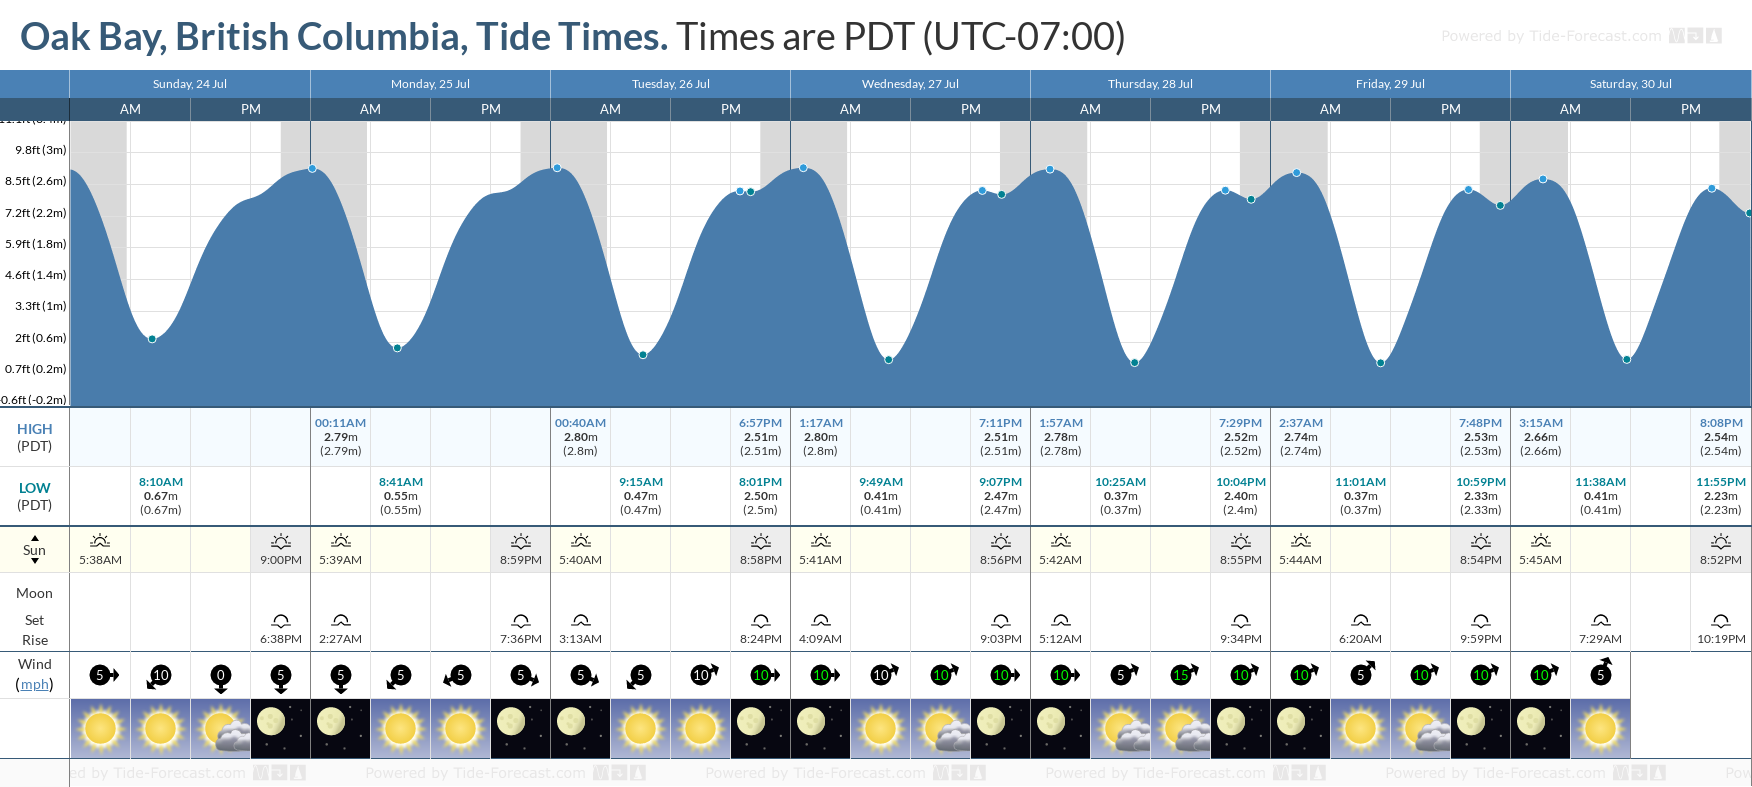 Oak Bay, British Columbia Tide Chart including high and low tide tide times for the next 7 days